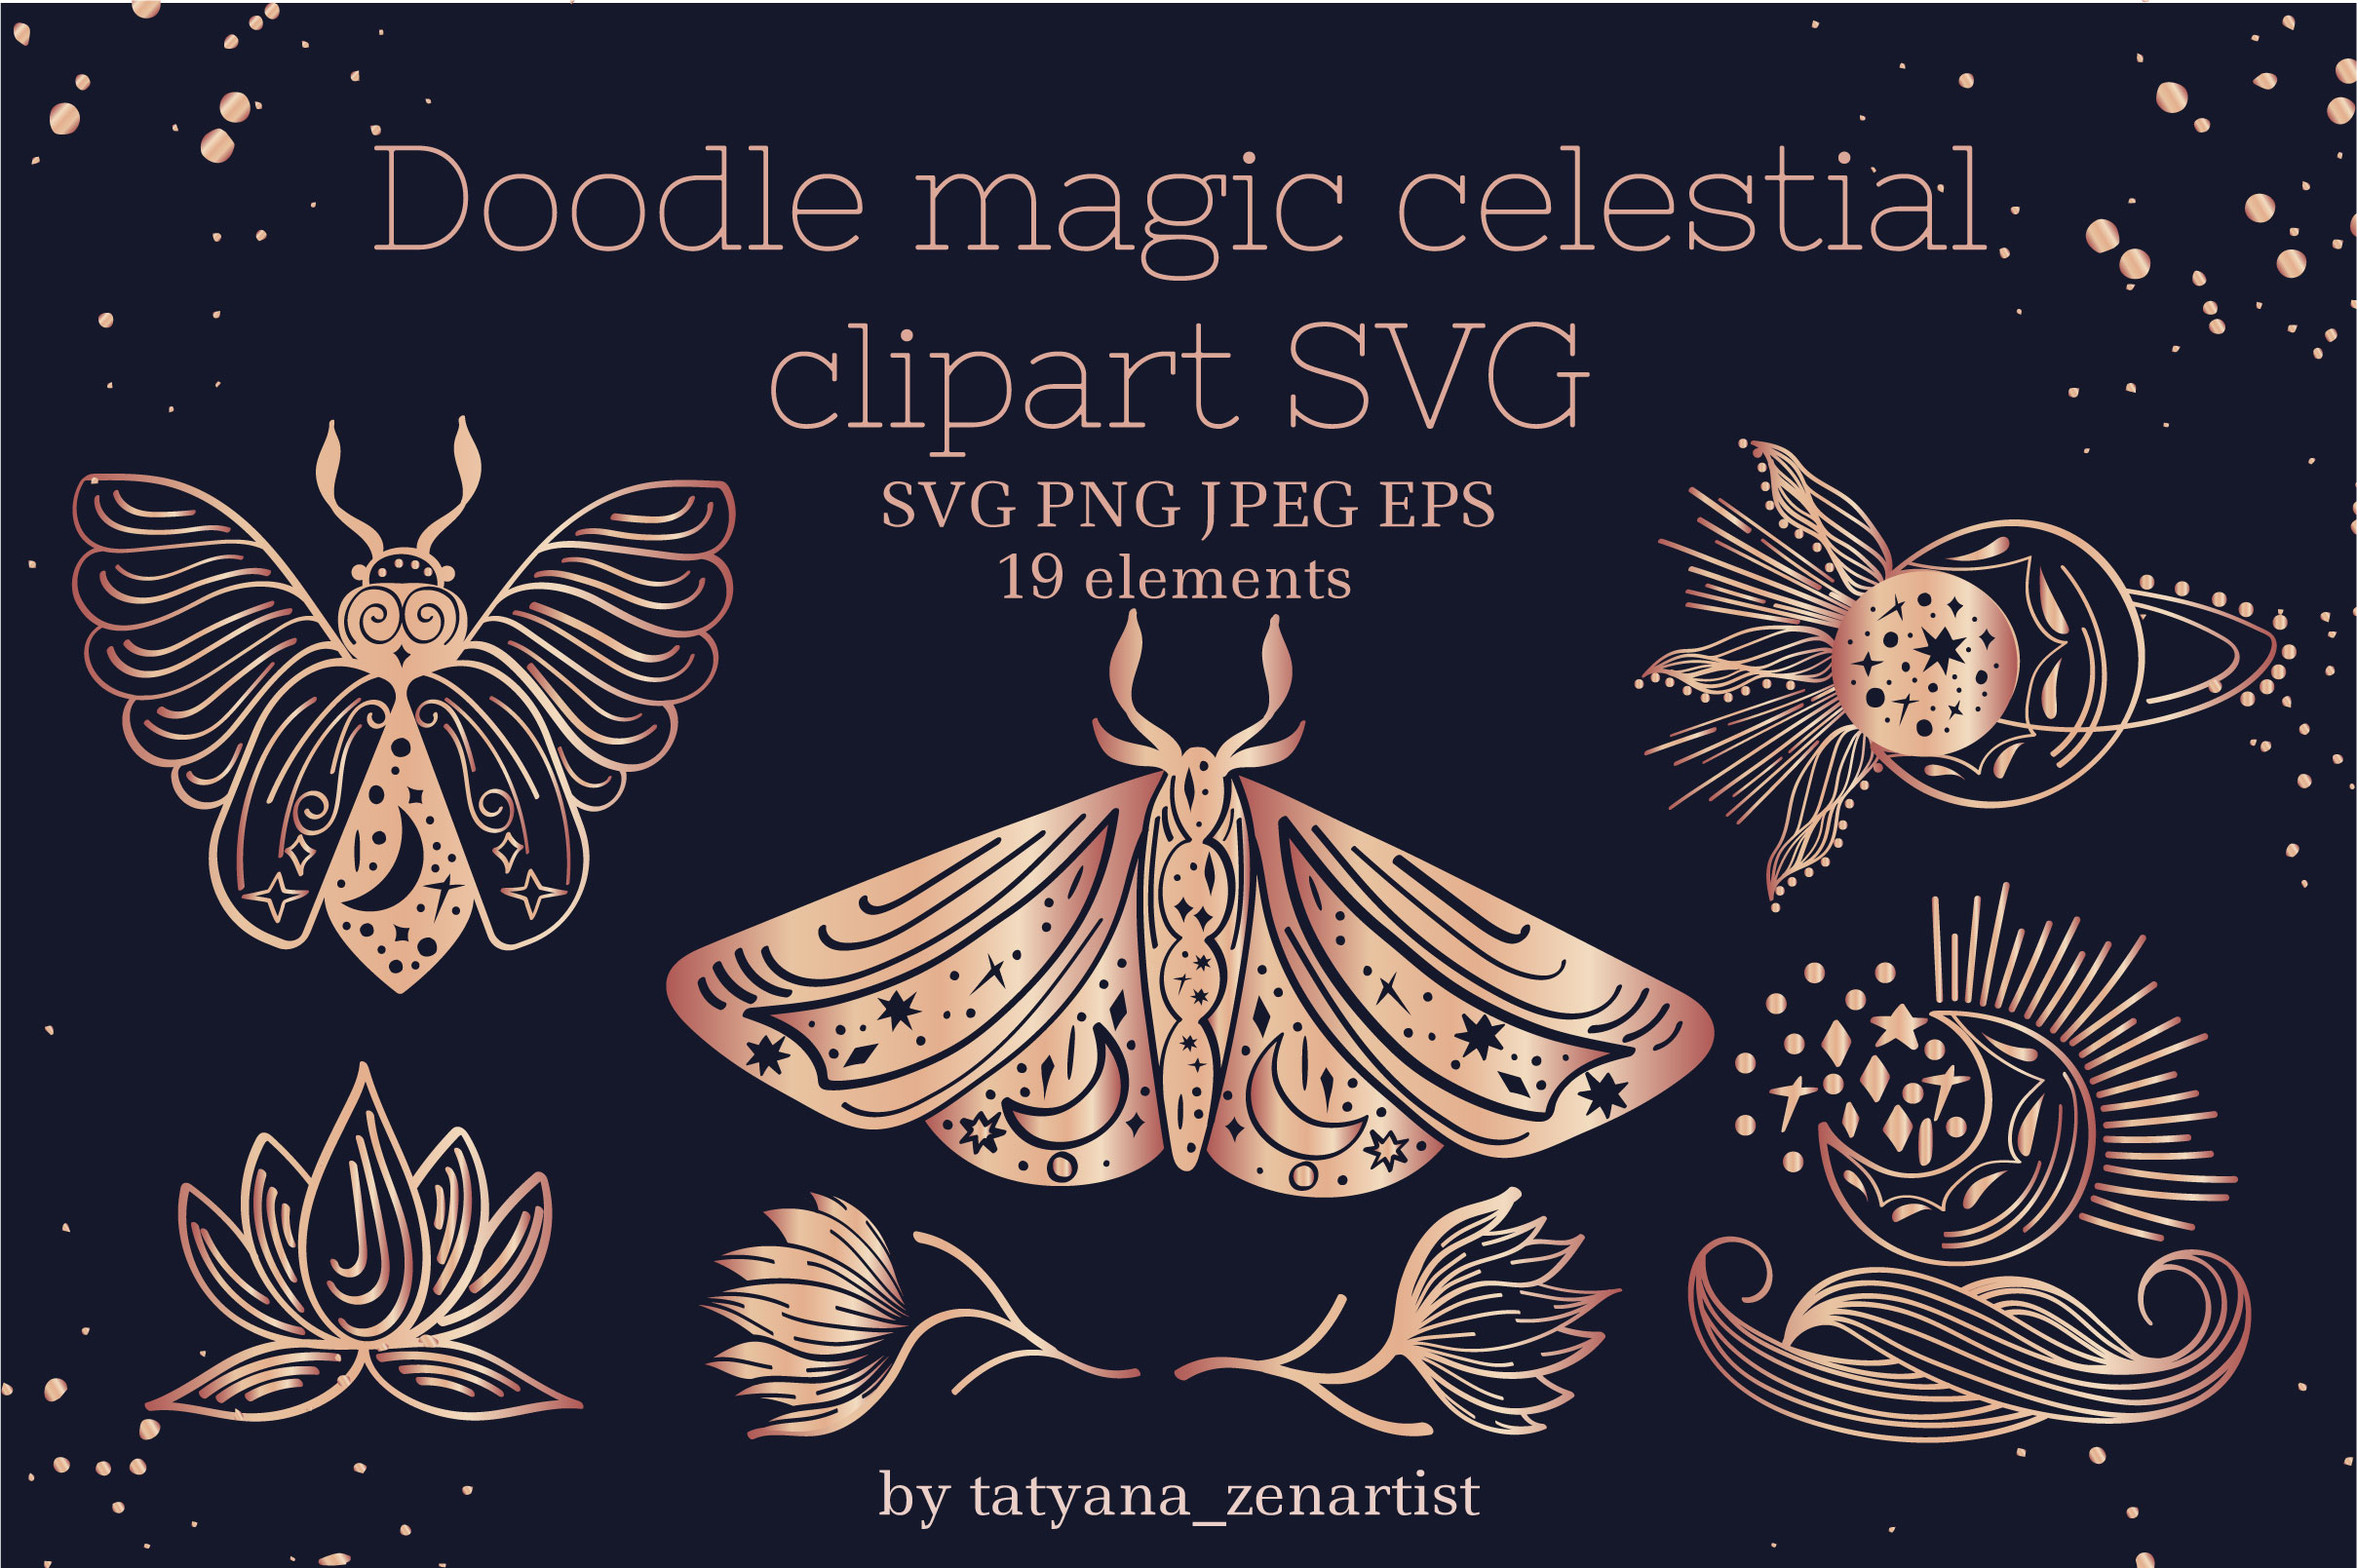 Download Free Magic Celestial Doodle Clipart Graphic By Tatyana Zenartist for Cricut Explore, Silhouette and other cutting machines.